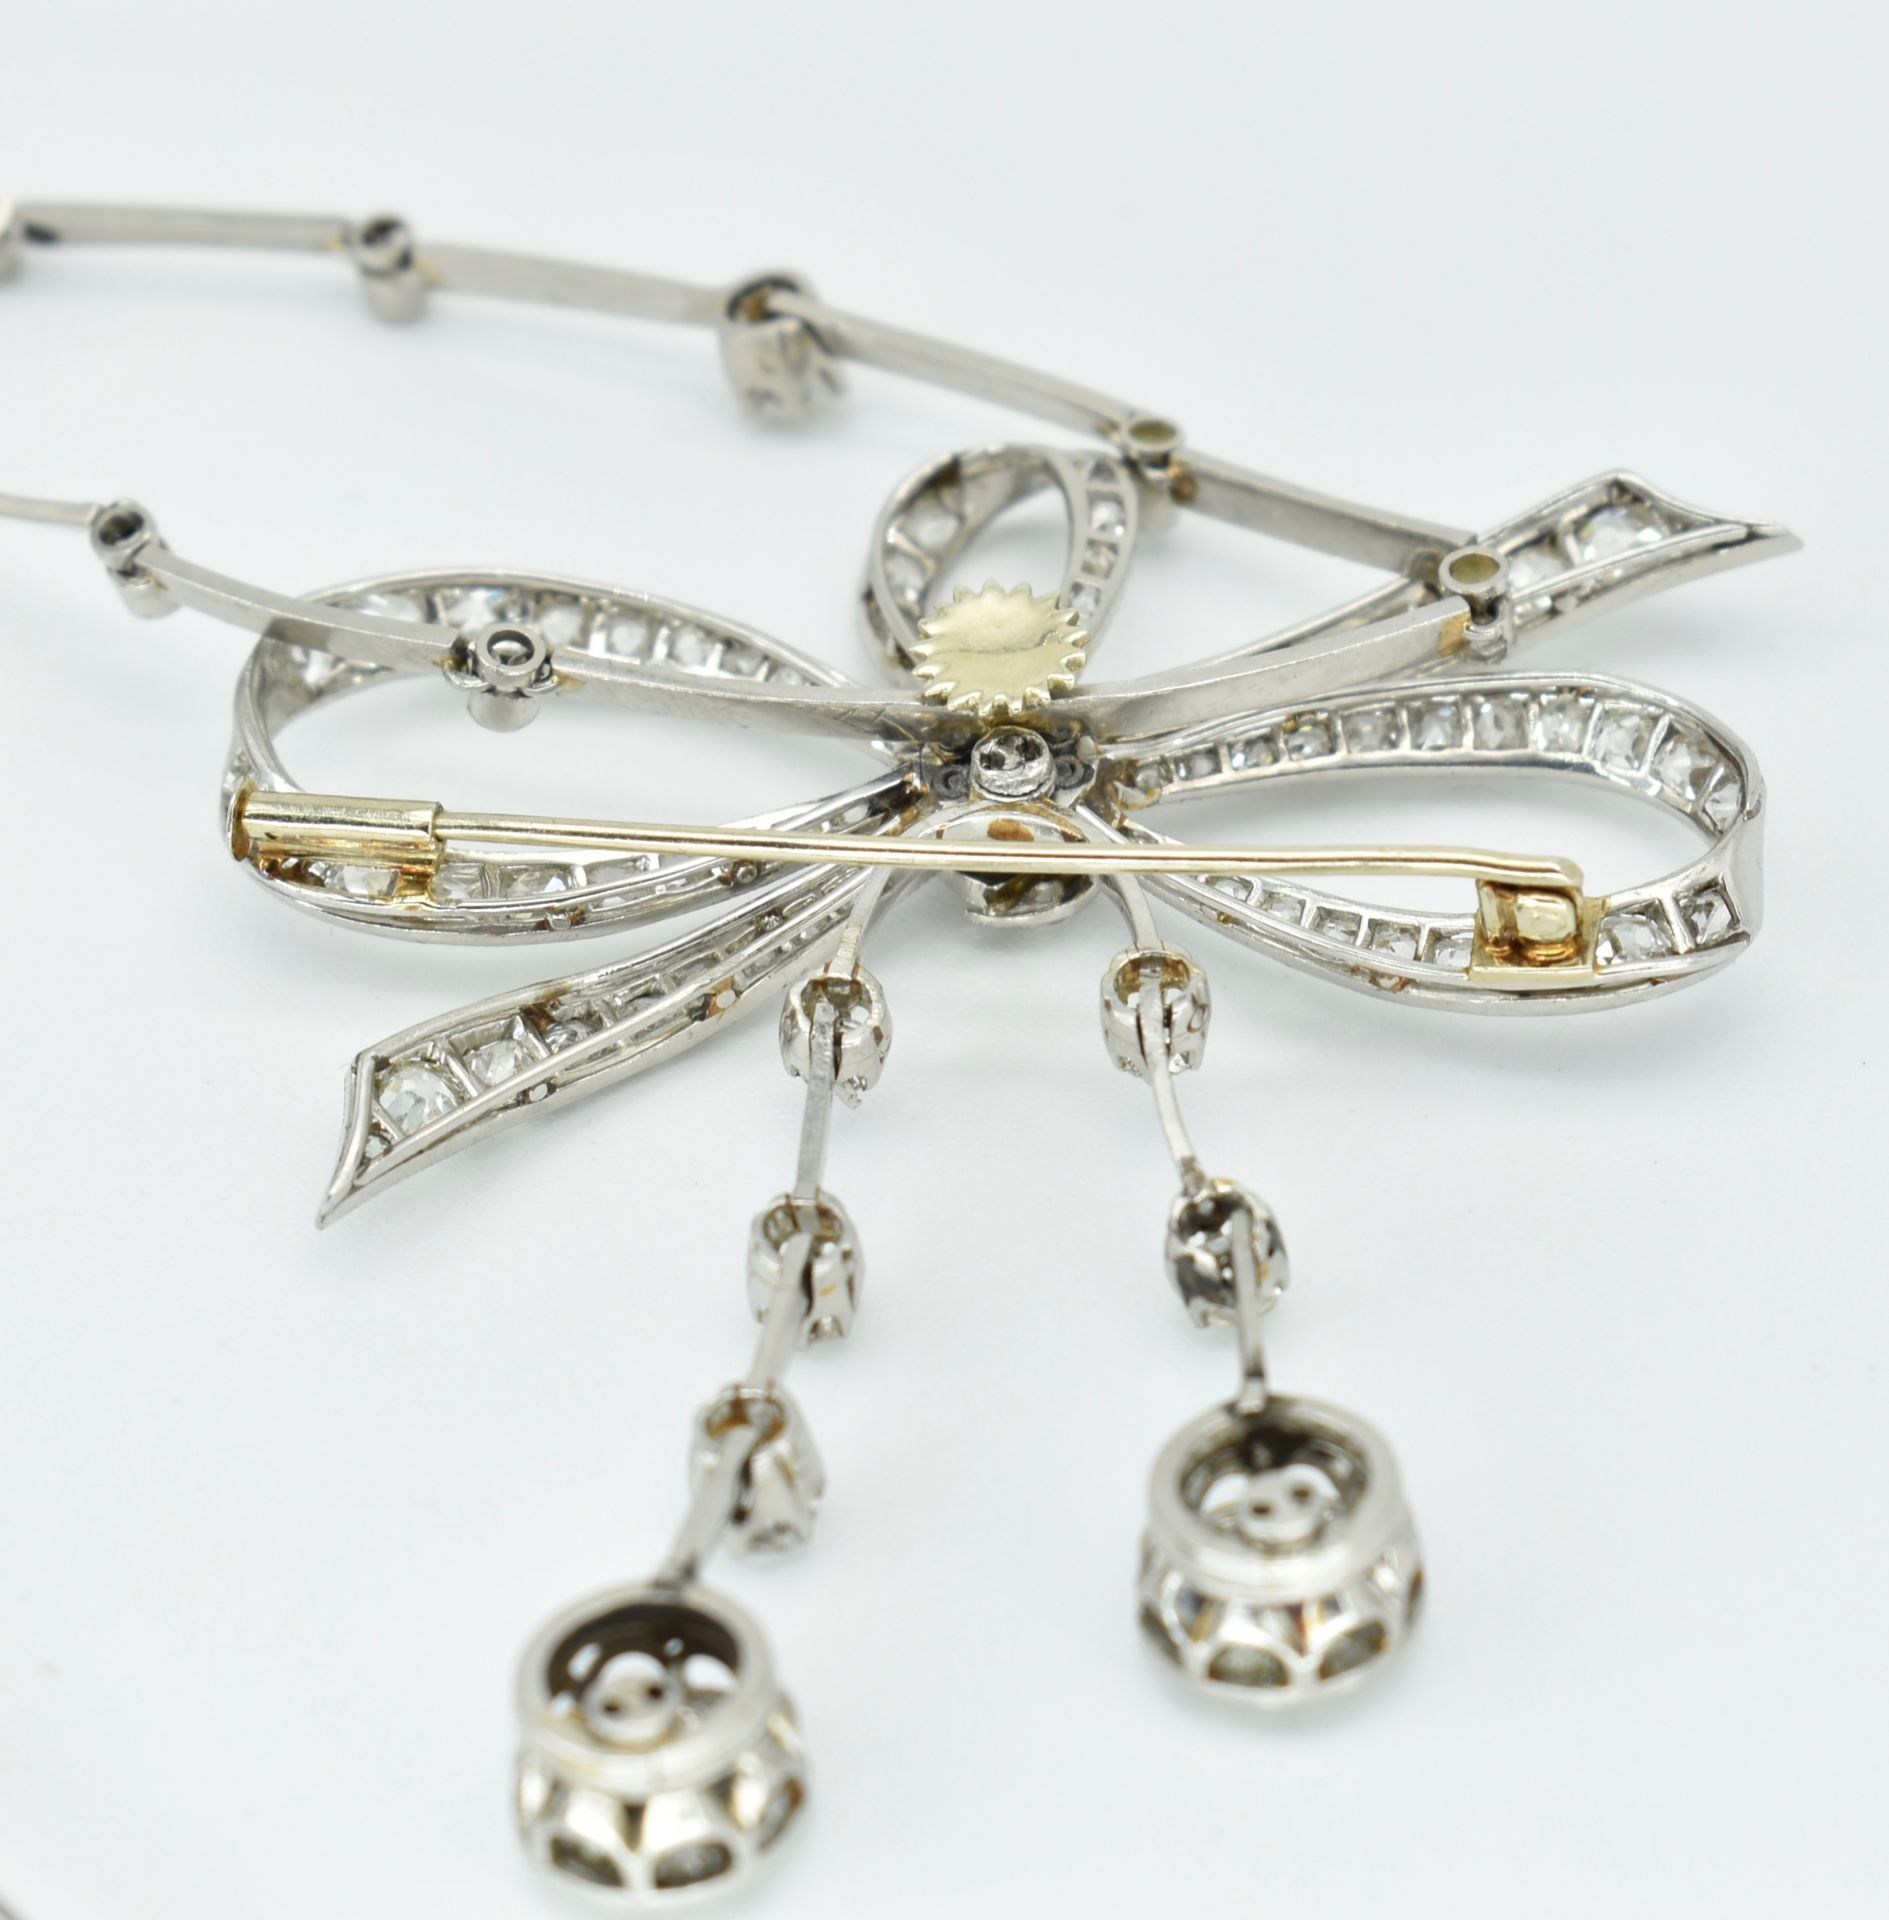 French 18ct Gold Platinum & Diamond Collar Necklace - Image 8 of 9